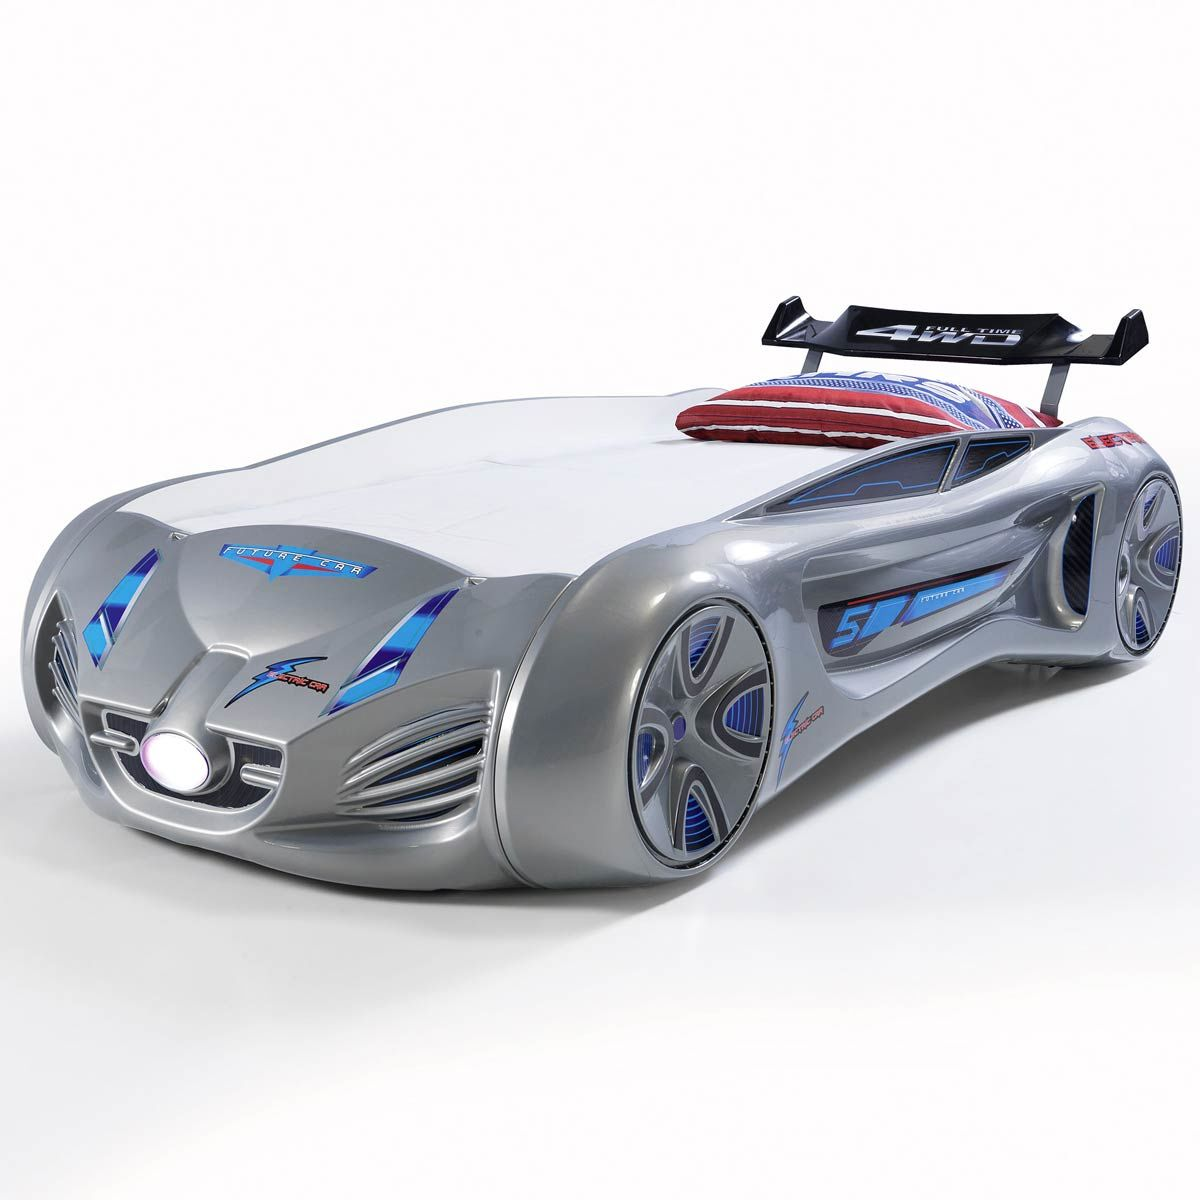 Cars Kinderbett Dreamkid Autobett Kinderbett Silber Future Car Rennauto